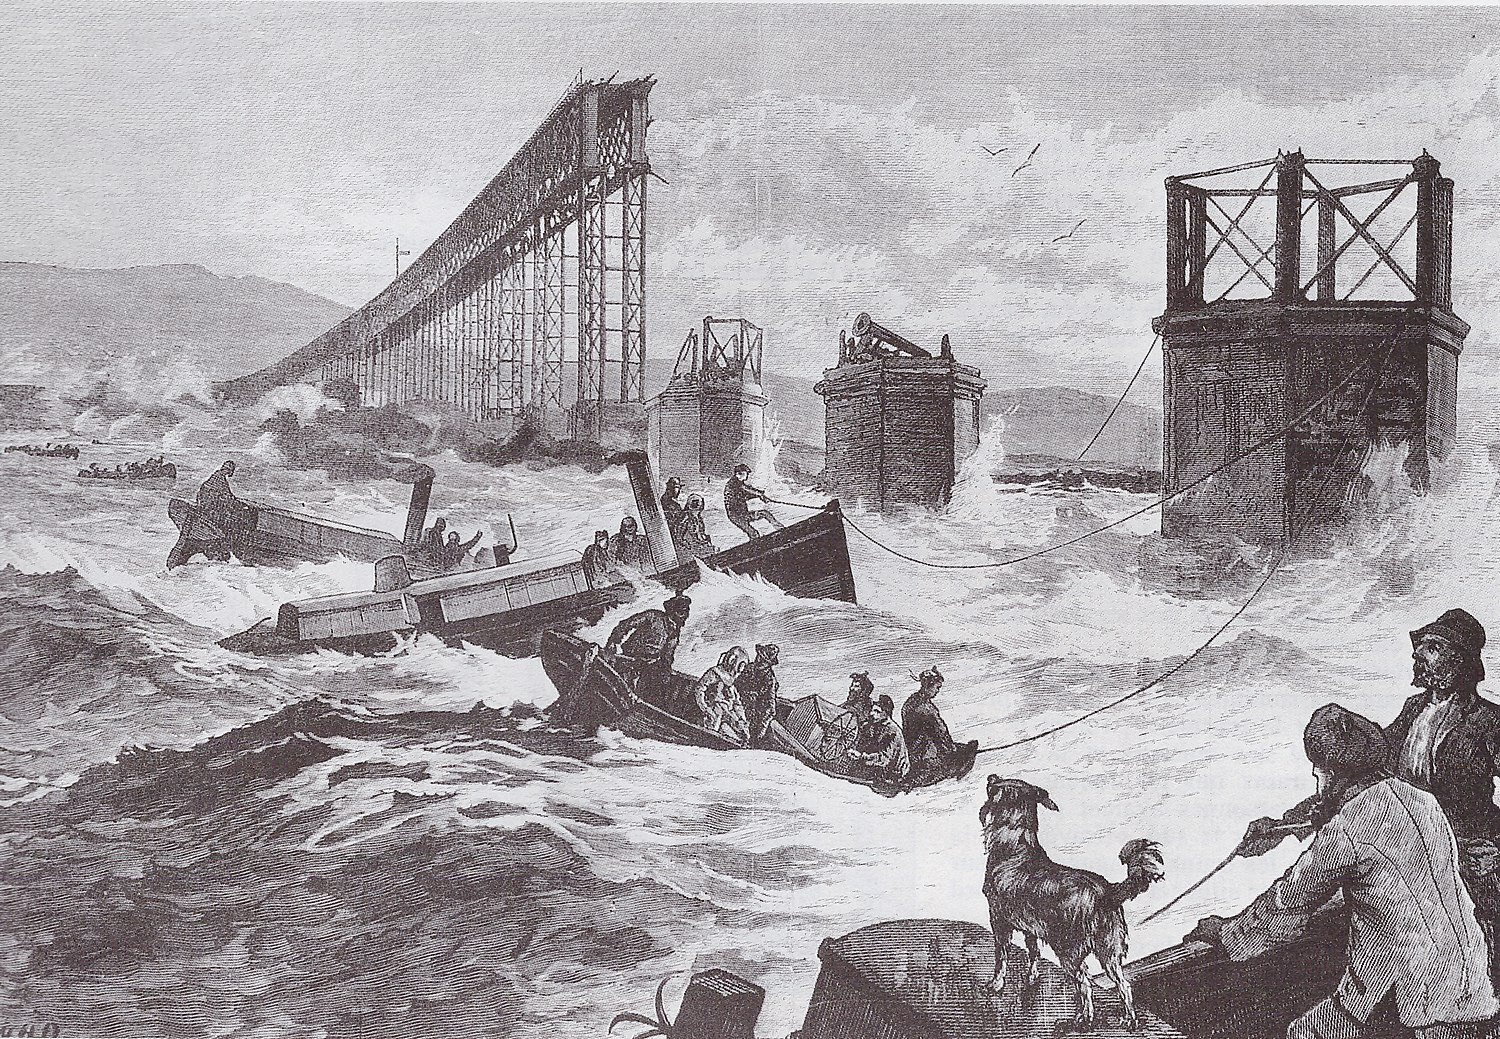 Catastrophe du pont sur le Tay - 1879 - Illustration.jpg